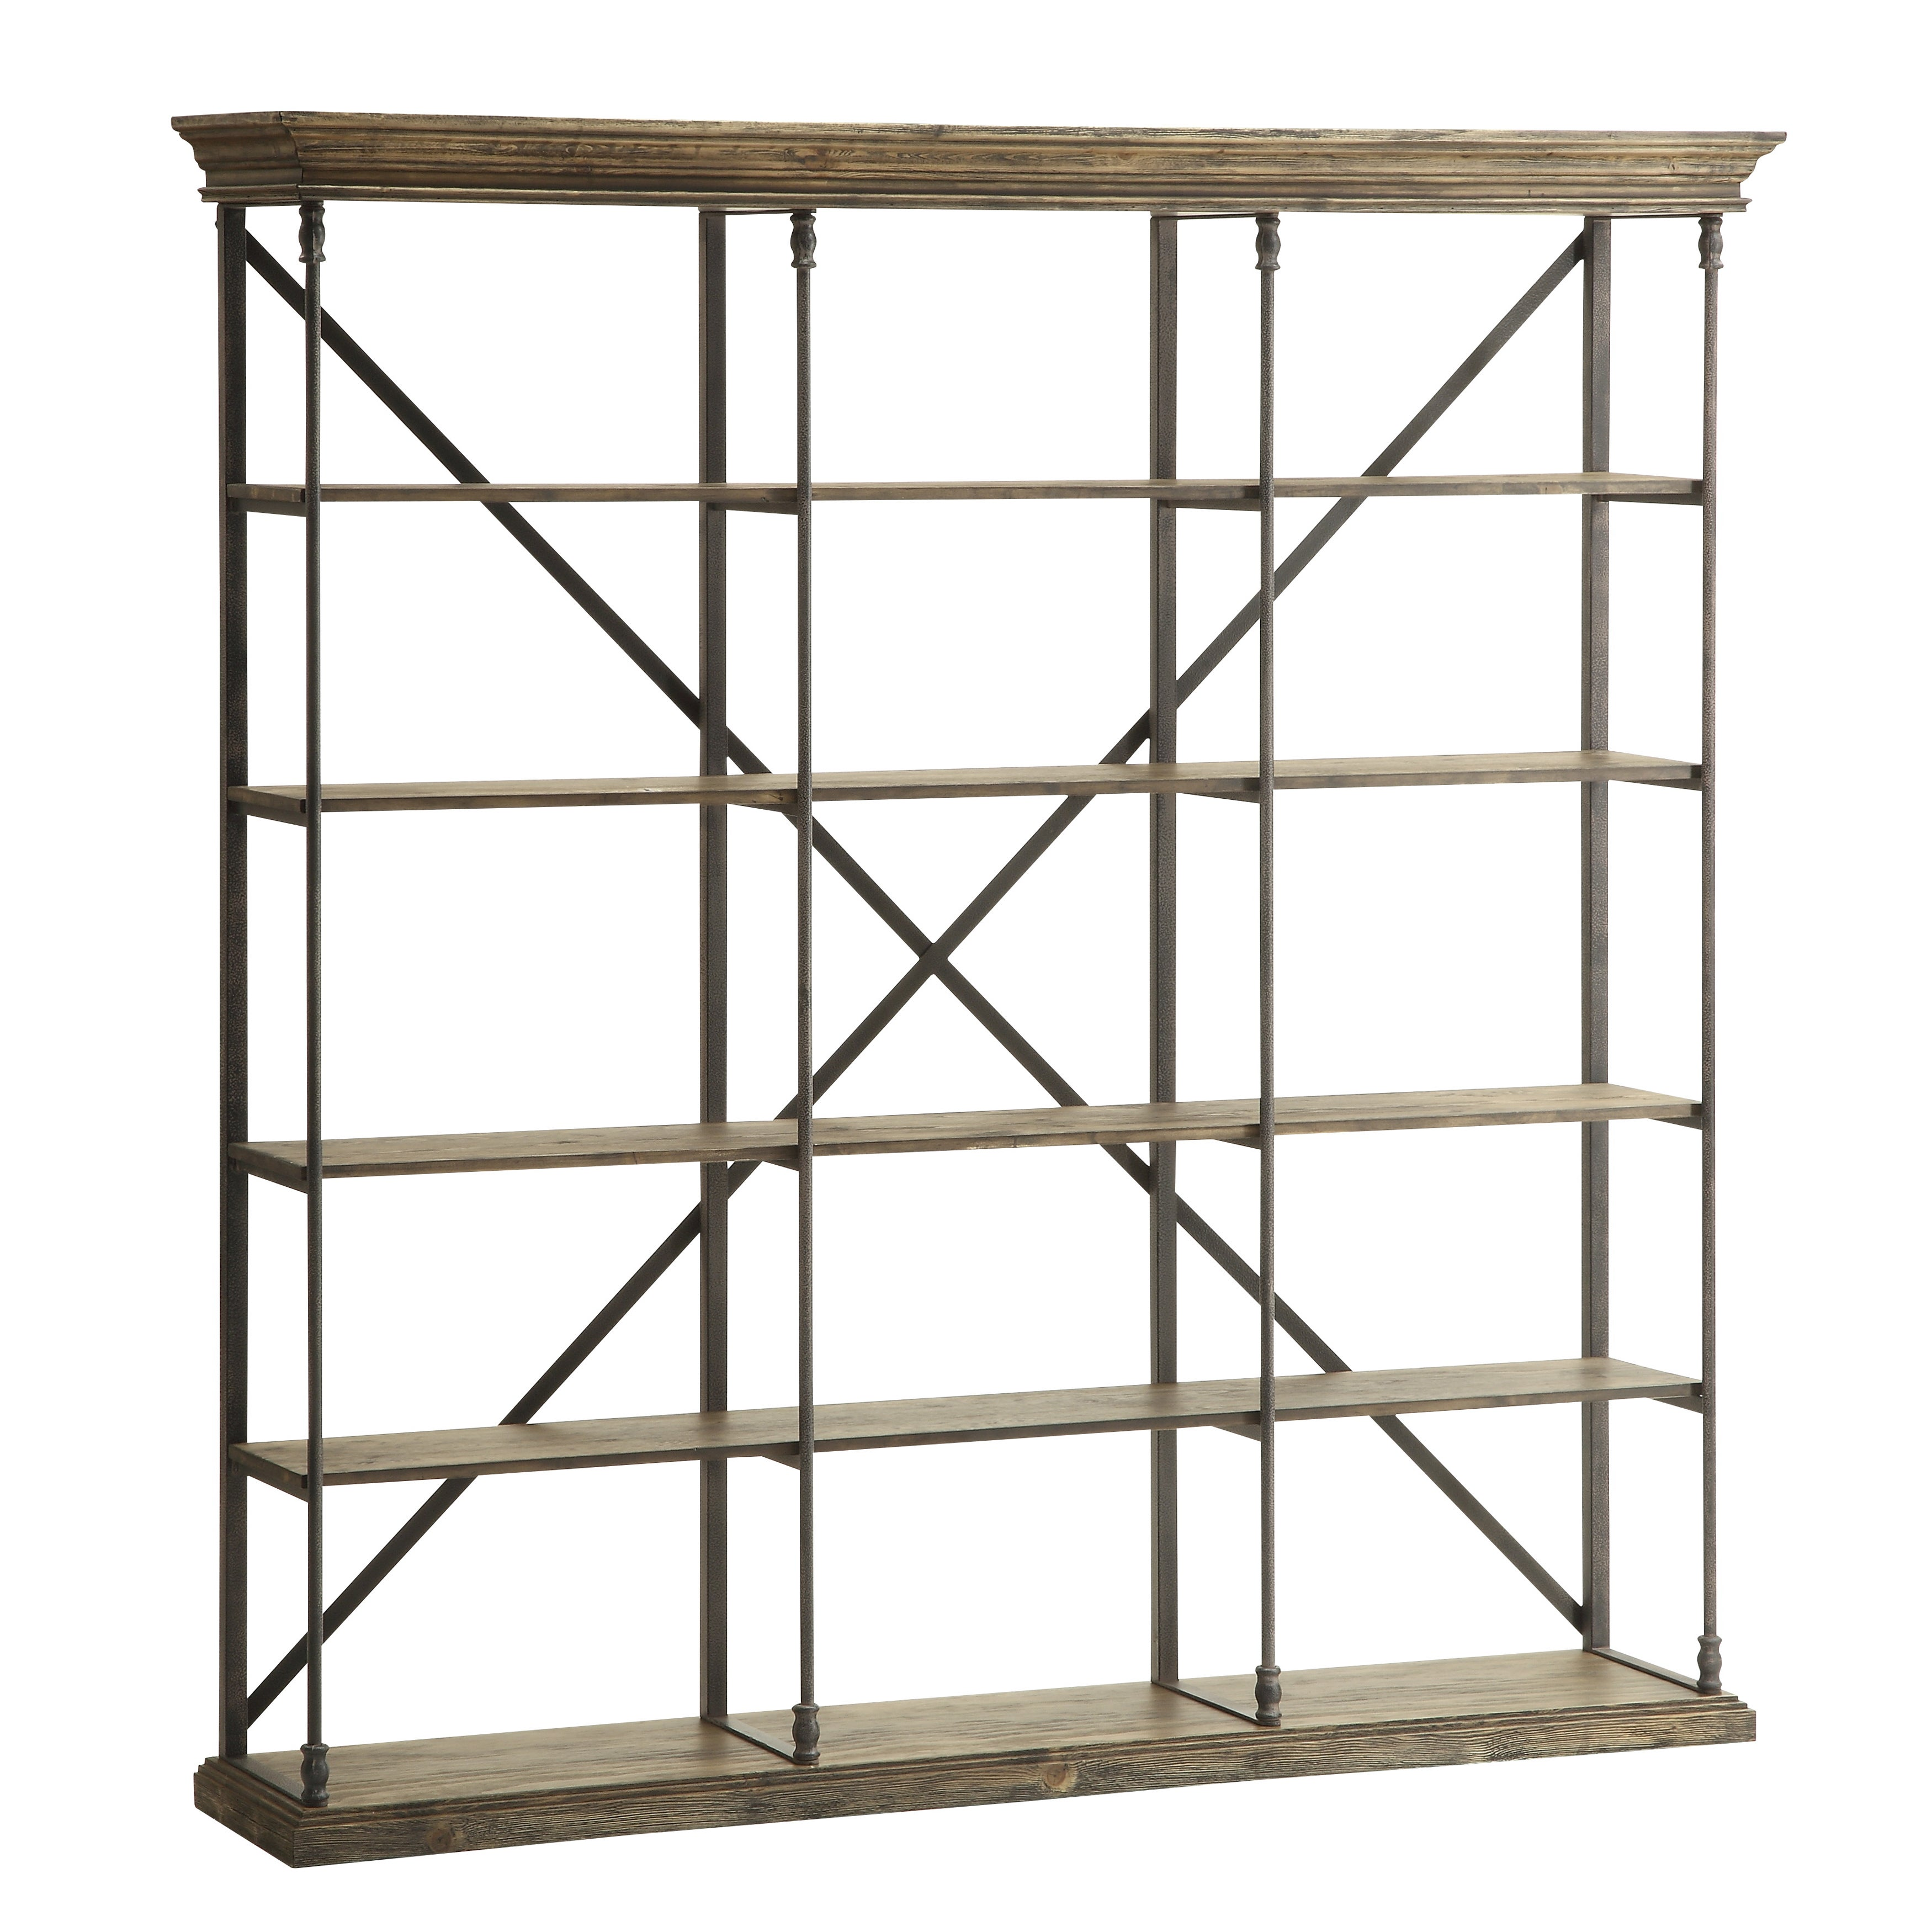 steel stainless overstock sunpan today home metal product wood bookcases mortimer free garden shipping bookcase